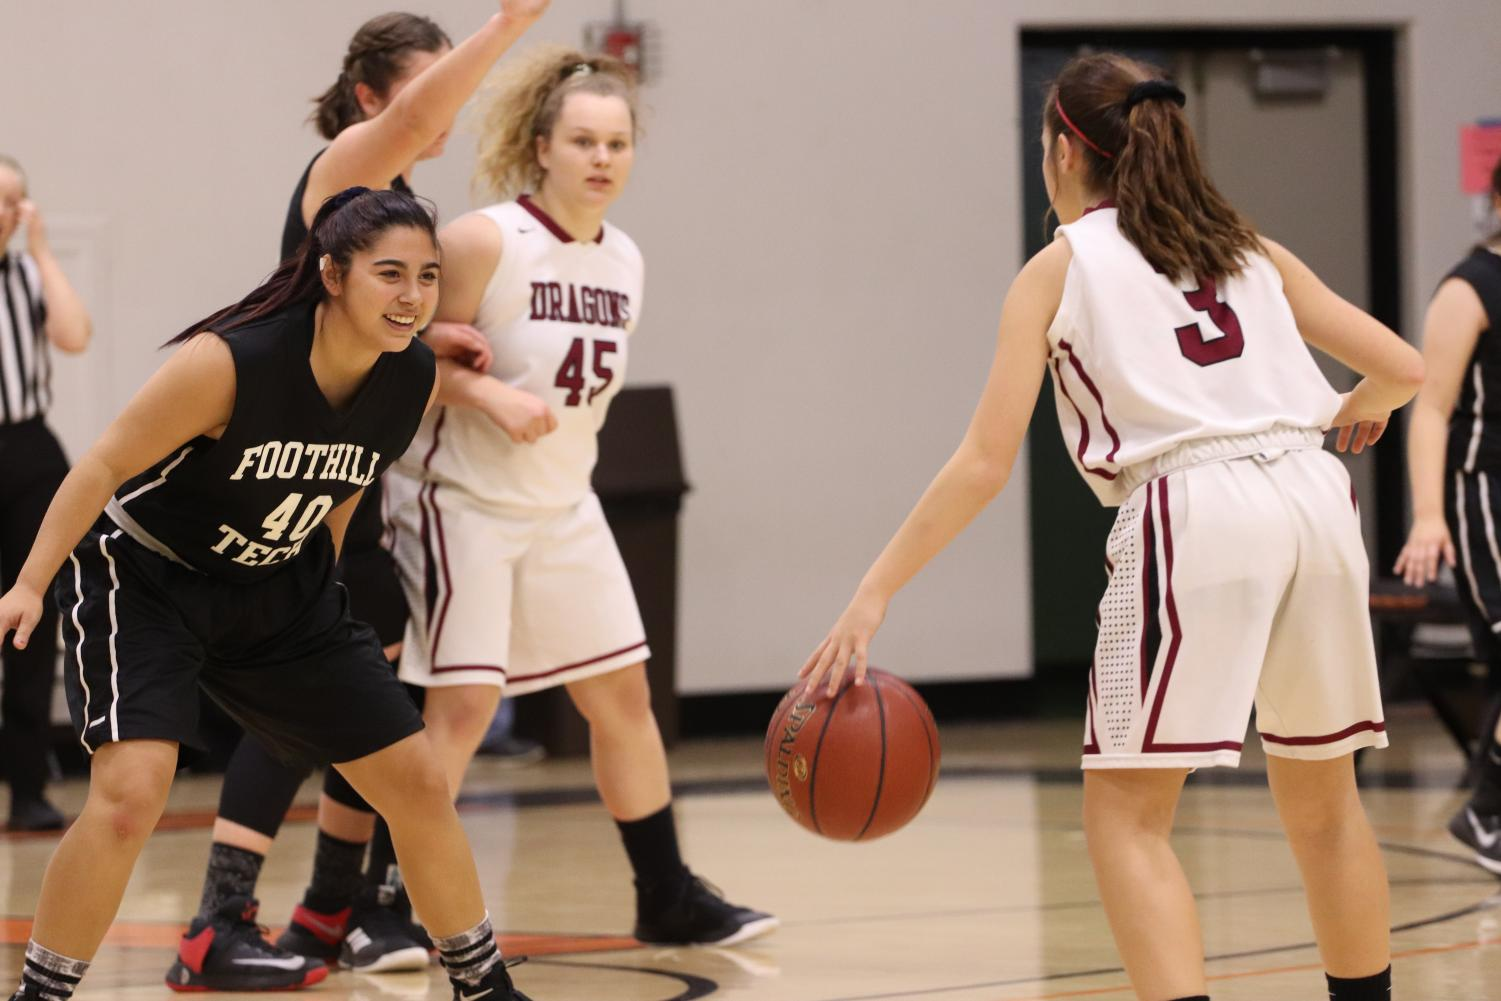 Cydnie Gutierrez '19 guards former teammate Cierra Marienthal '22 with a smile on her face